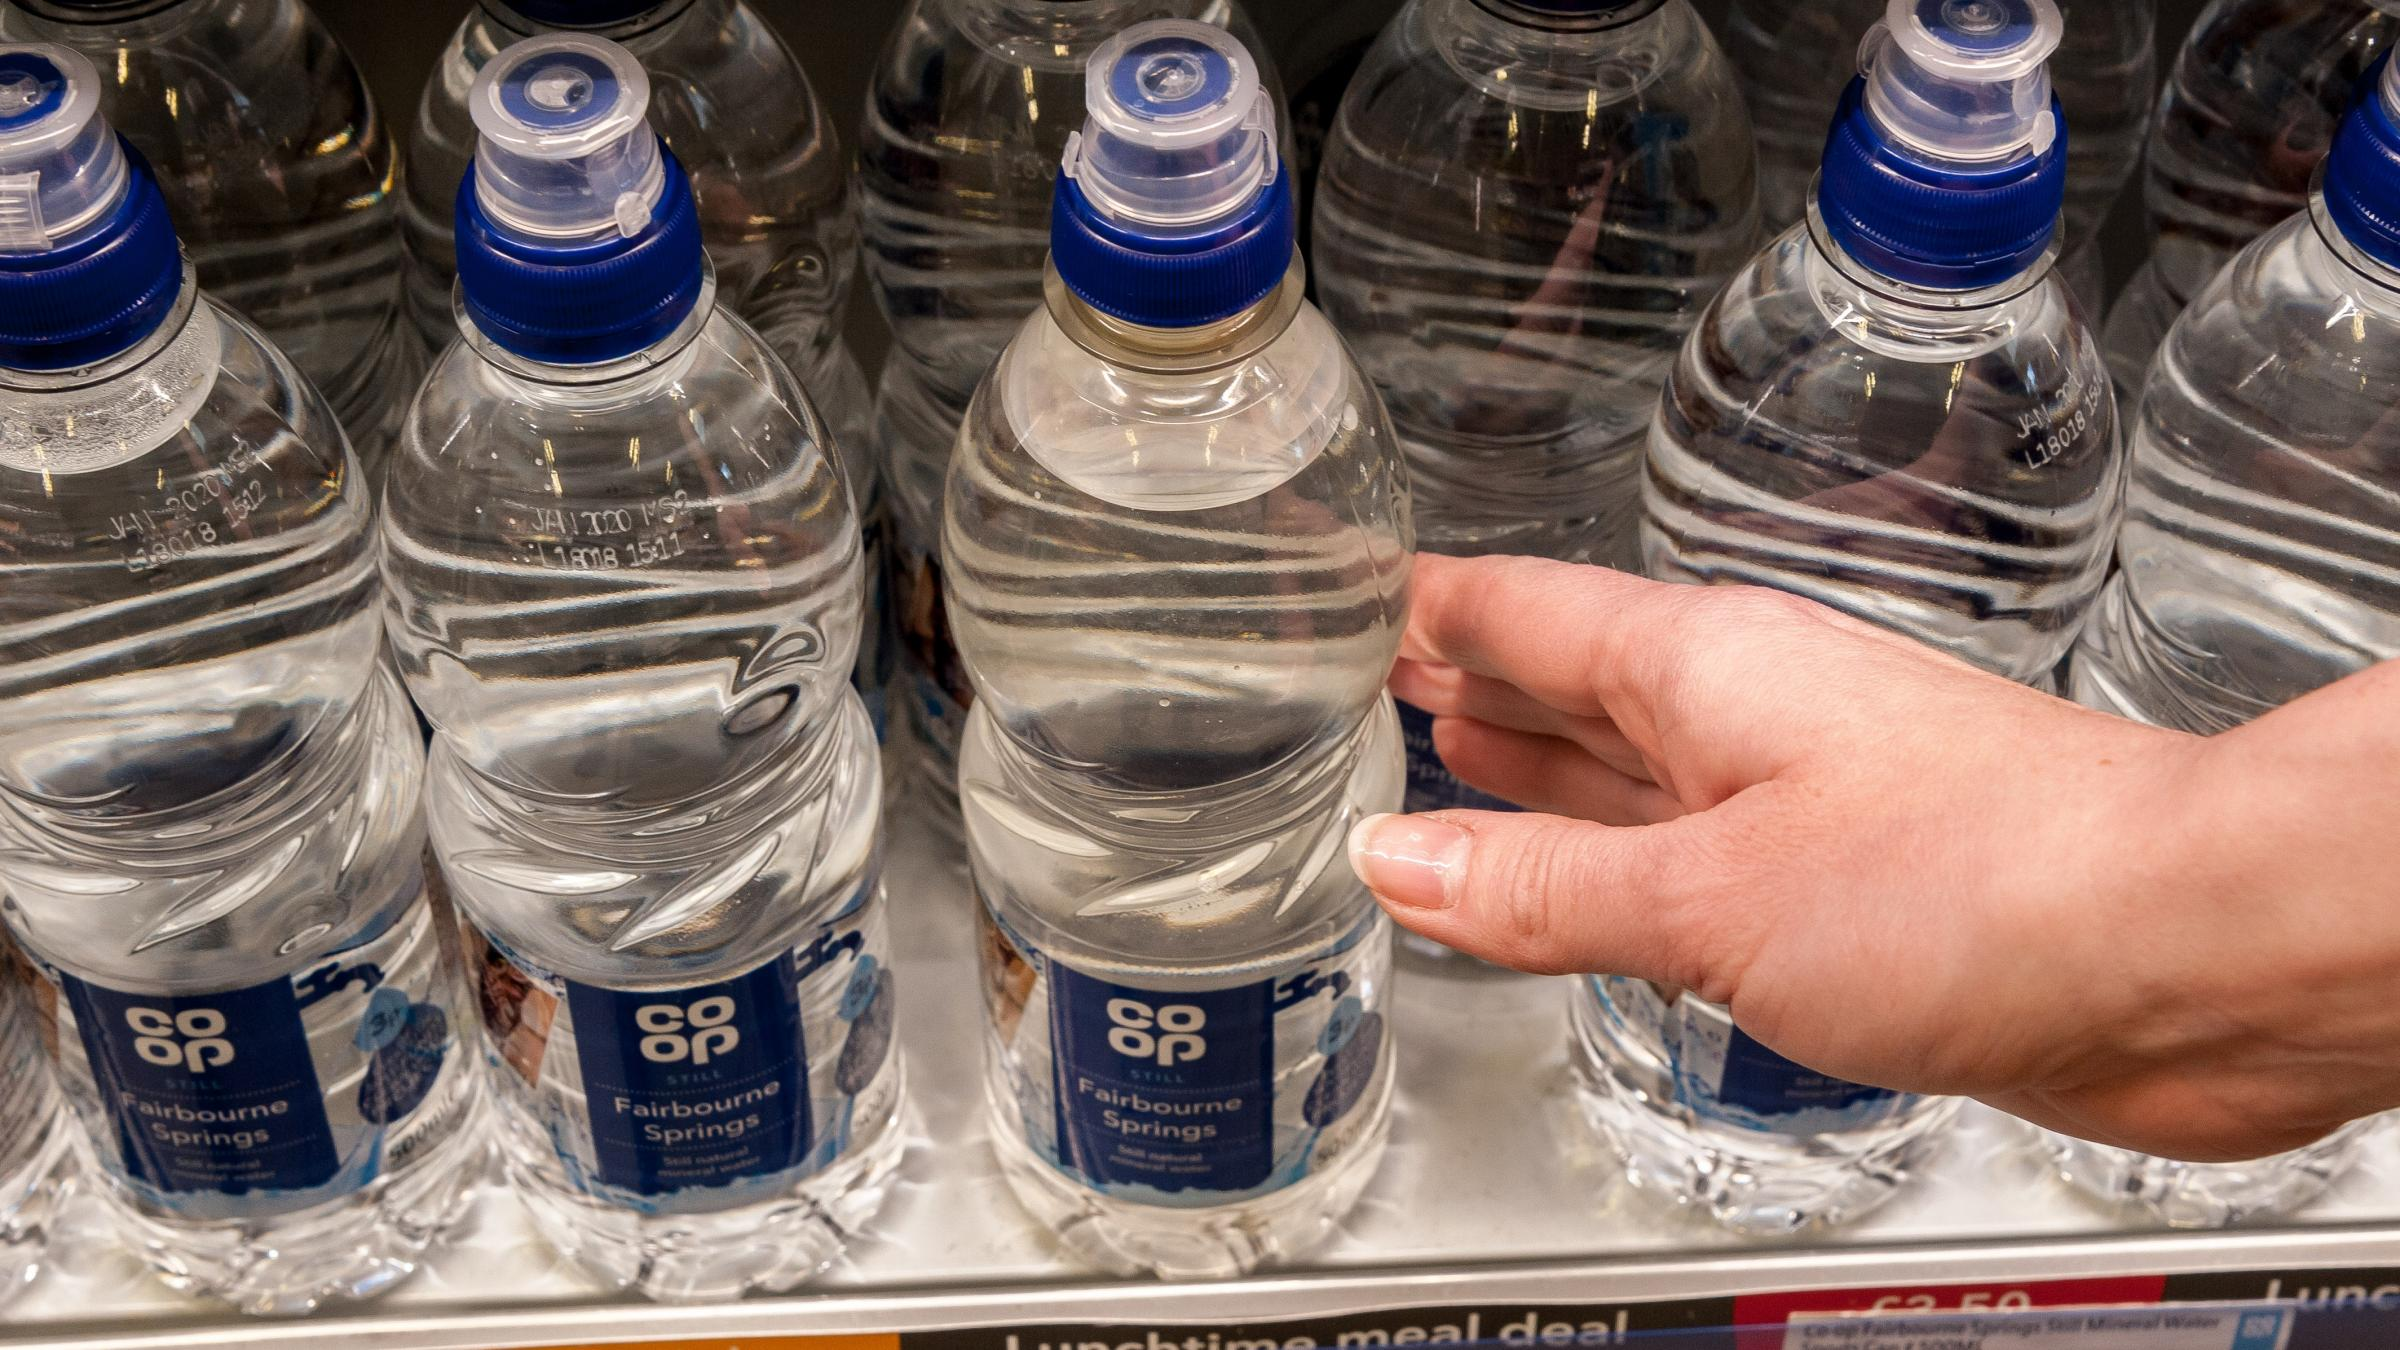 Co-op trials 'reverse vending machines' at festivals to boost bottle recycling